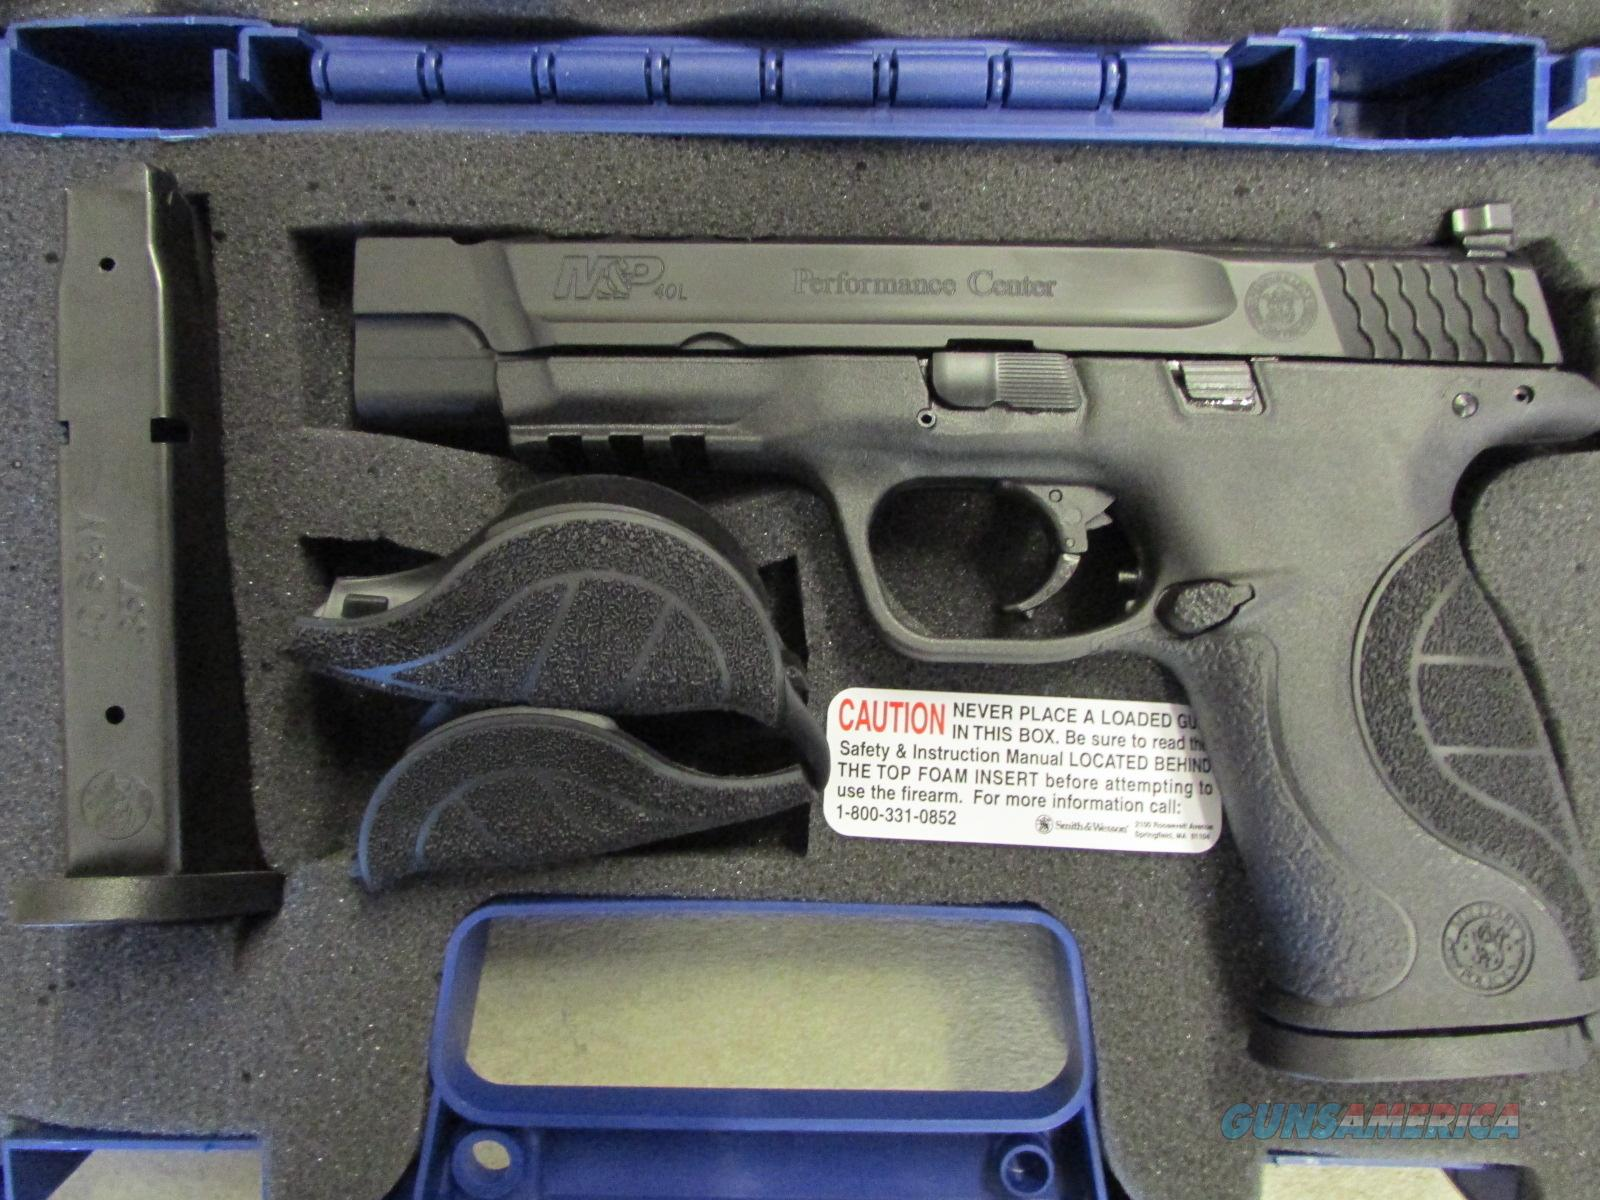 Smith & Wesson M&P40 Performance Center Ported .40 S&W  Guns > Pistols > Smith & Wesson Pistols - Autos > Polymer Frame